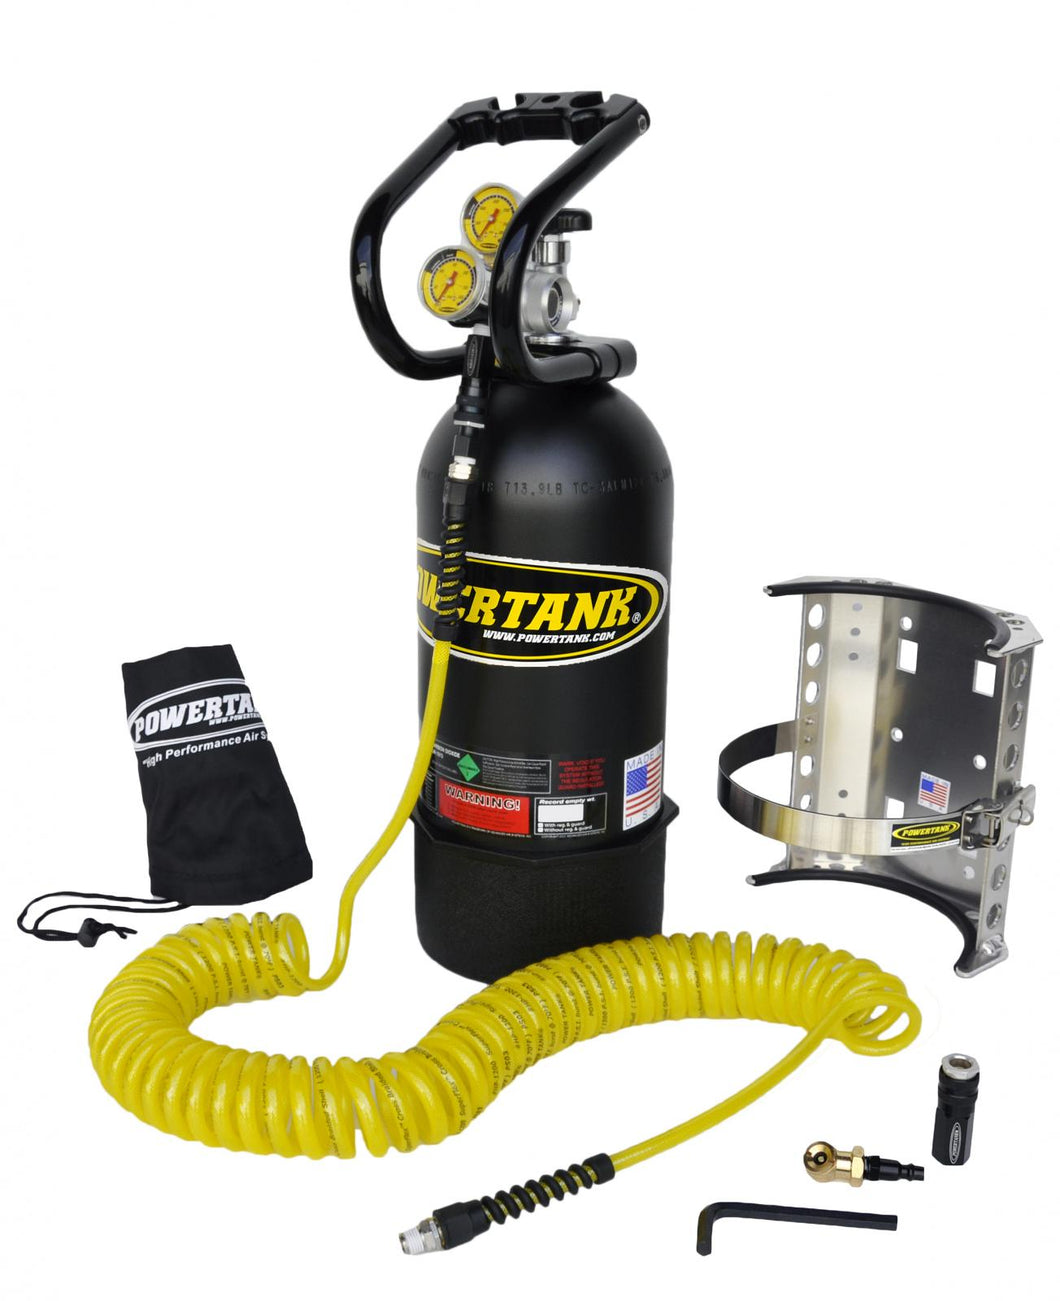 CO2 Tank 10 LB Package A System 400 PSI Matte Black Power Tank